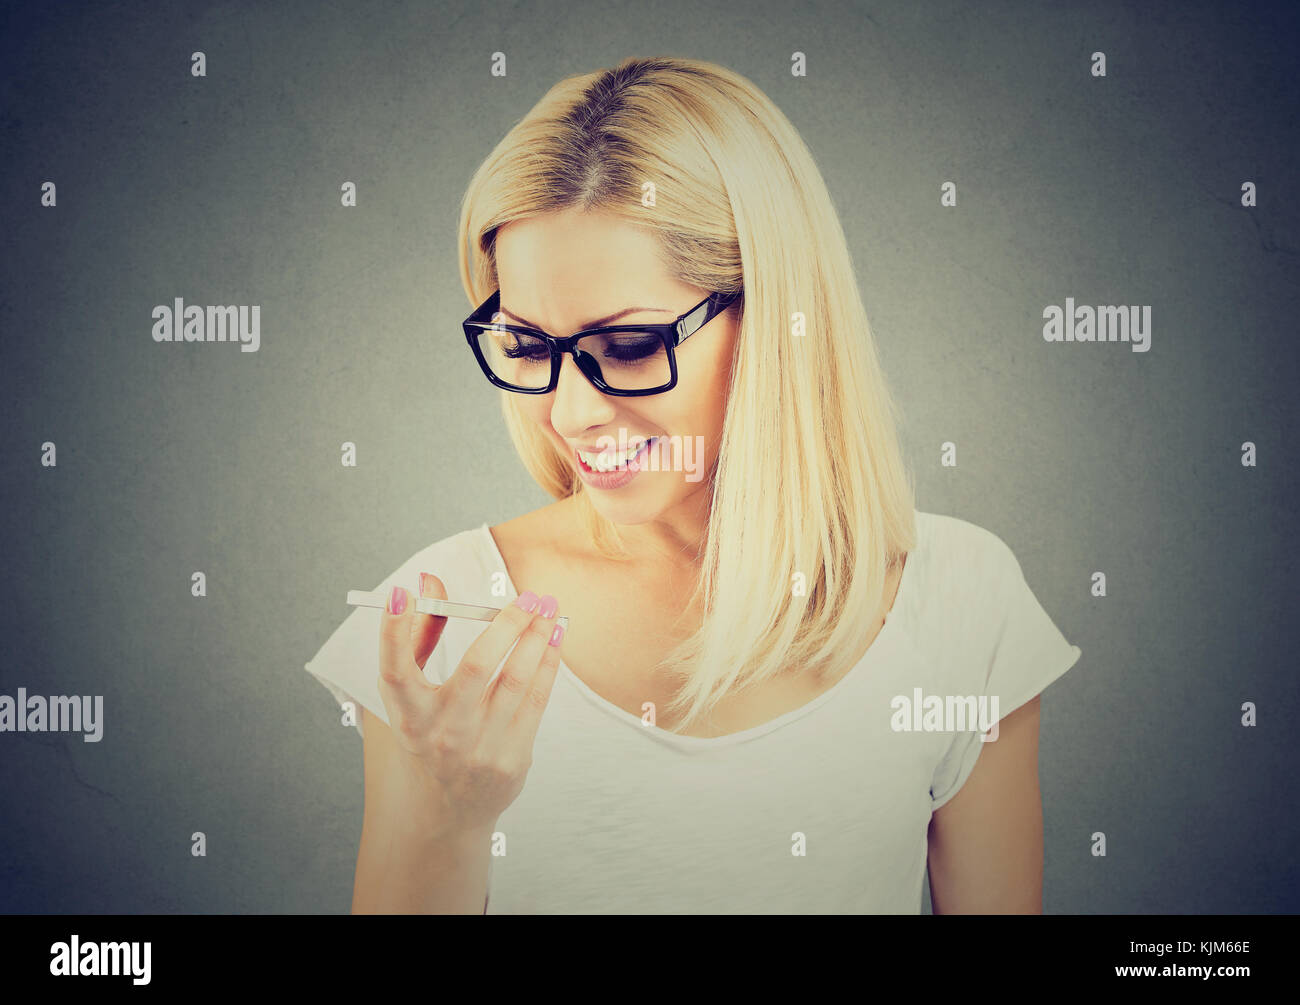 Woman wearing glasses using a smart phone voice recognition function online isolated on gray wall background - Stock Image